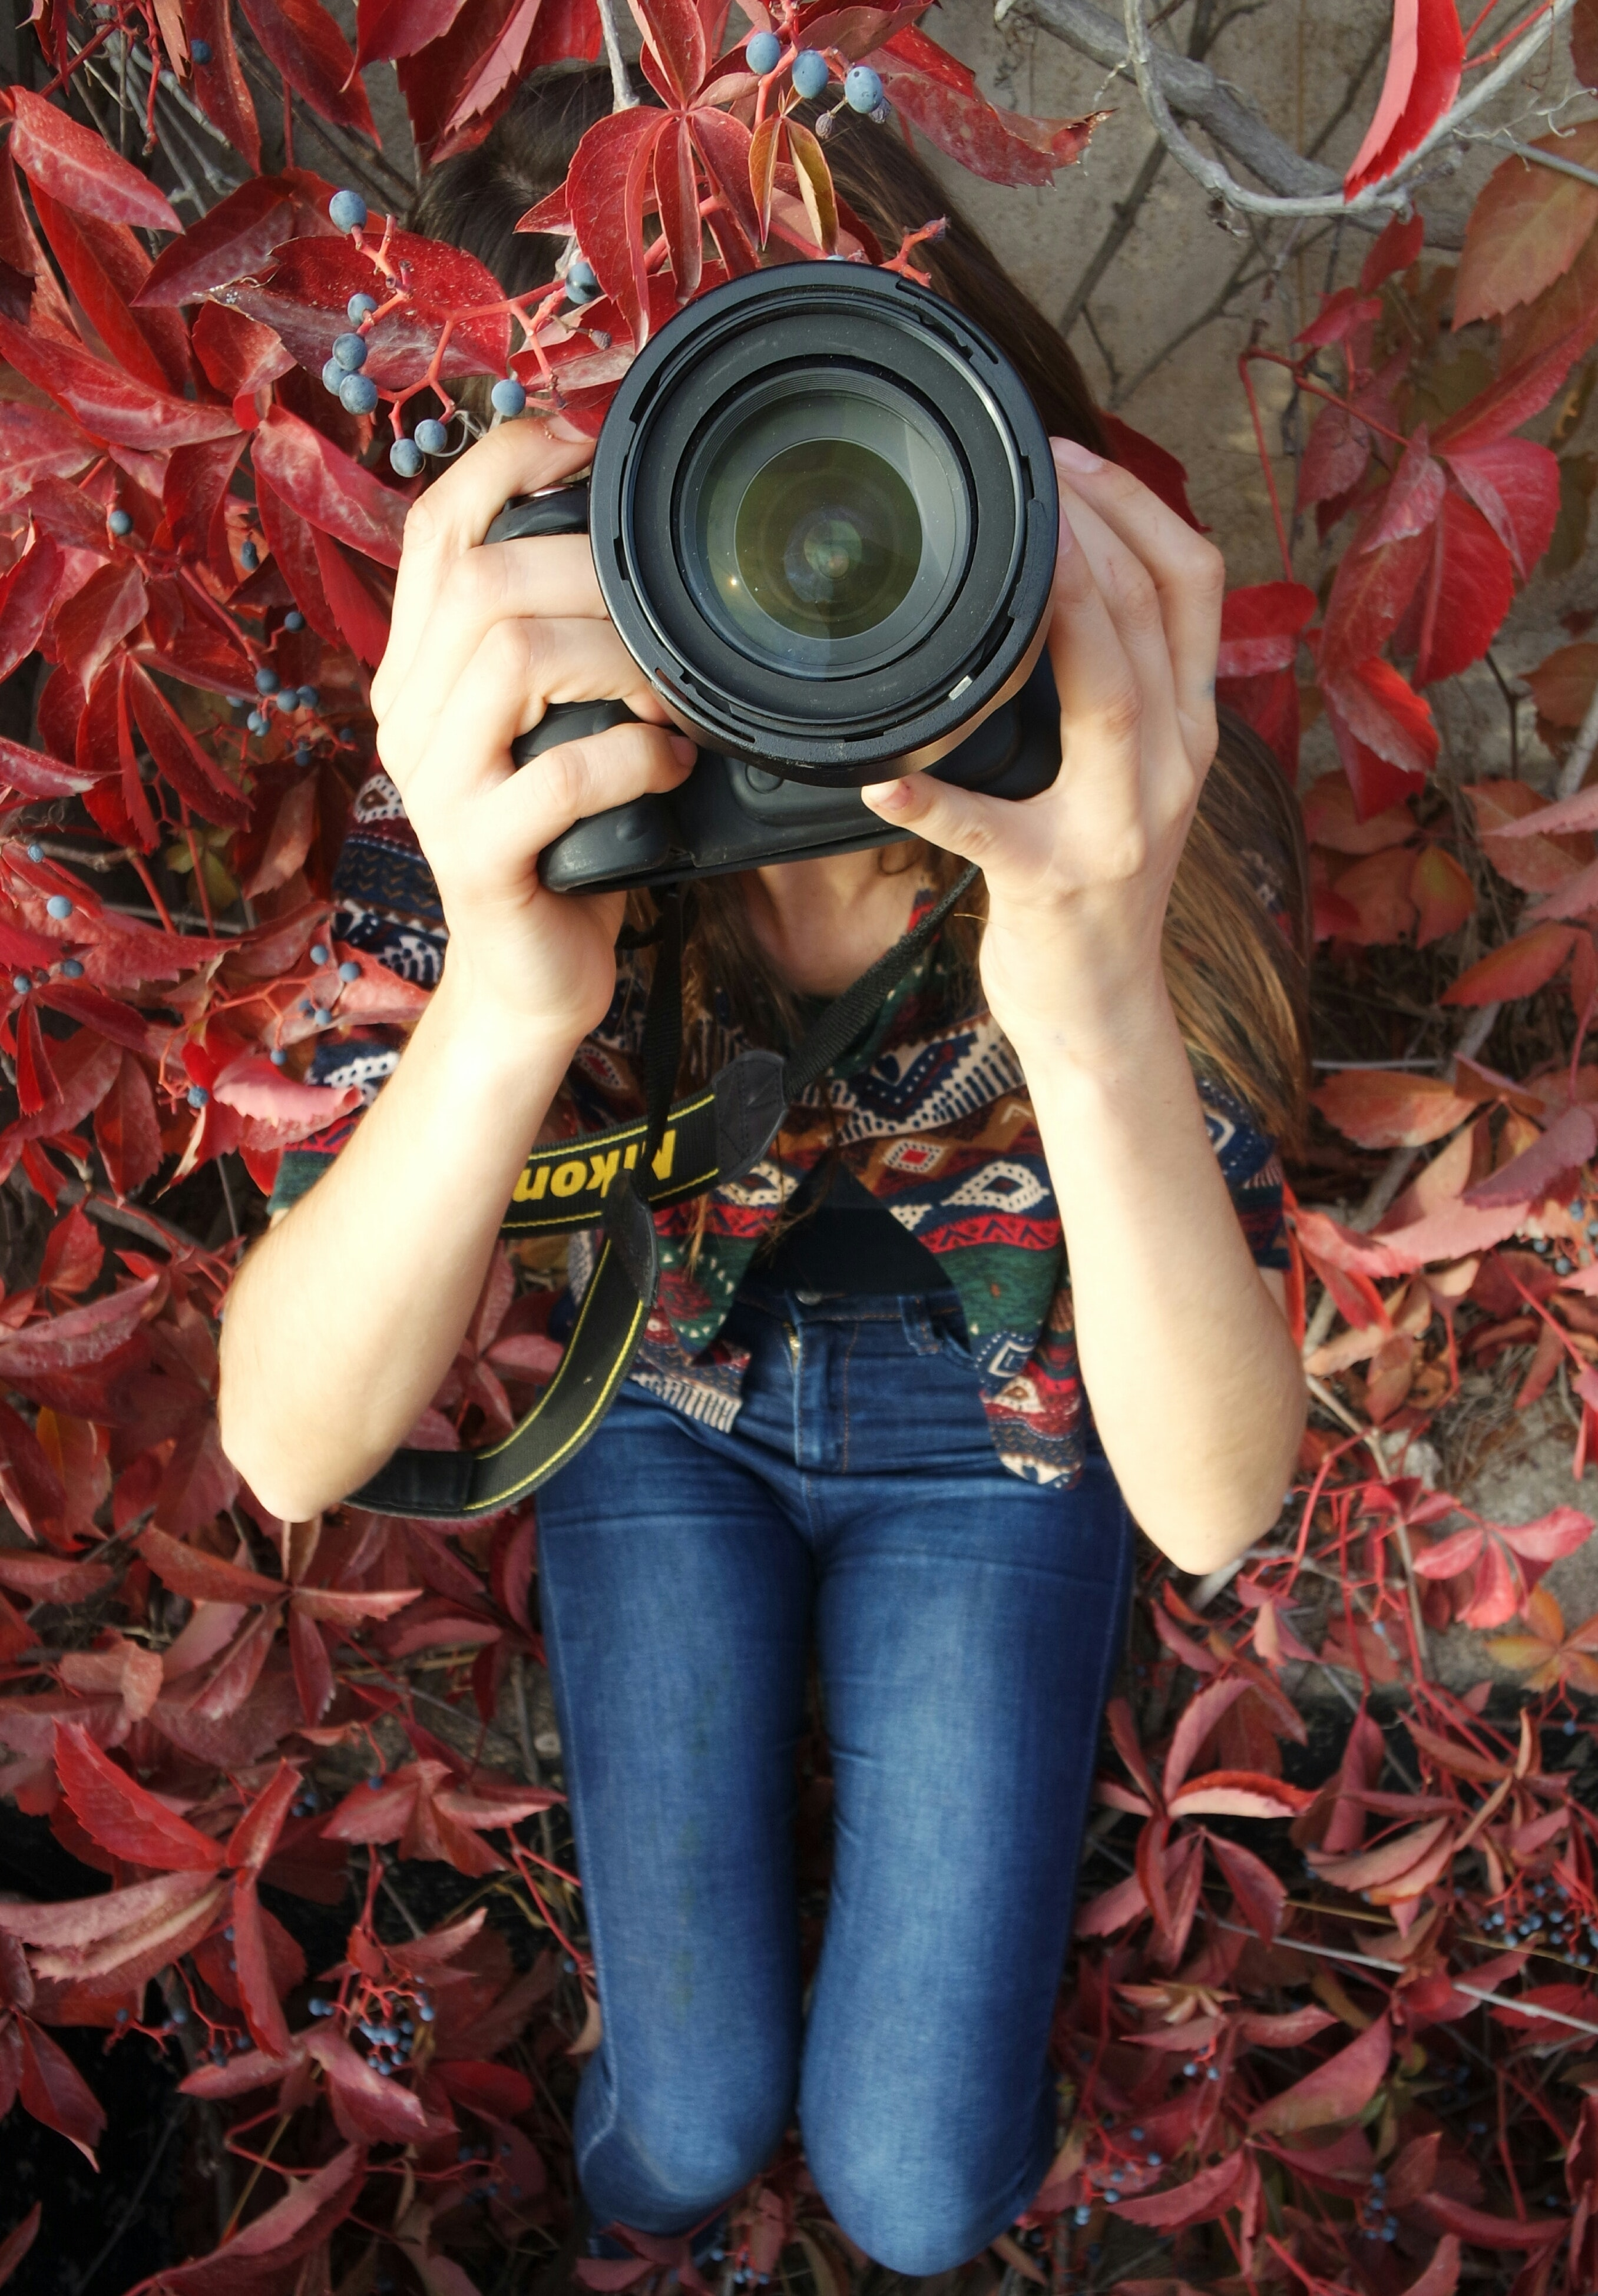 Woman holding dslr camera sitting on red leaved plant photo